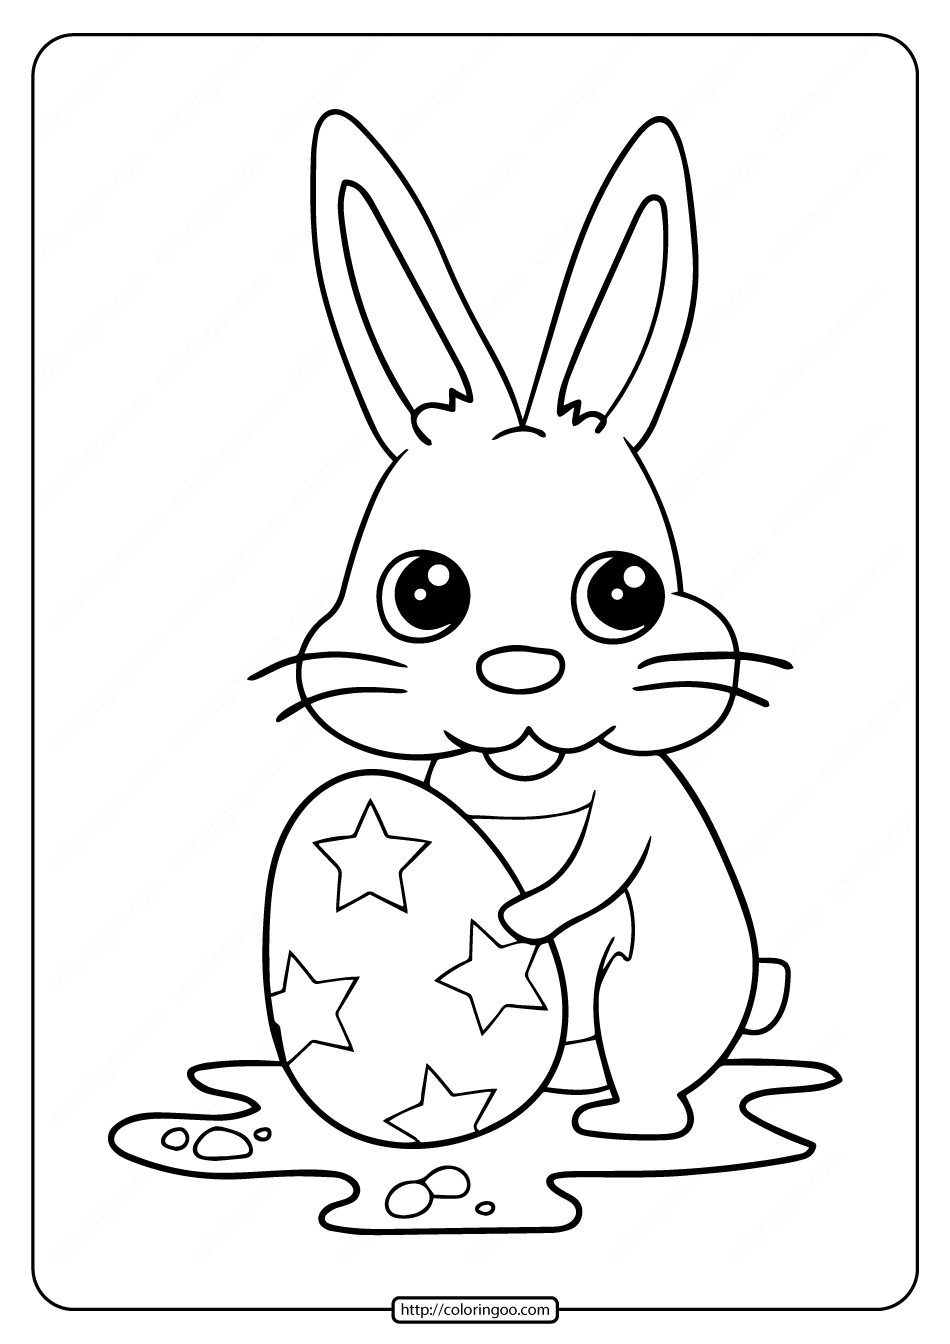 Egg Coloring Kit: Little Rabbit And Star Easter Egg Coloring Pages